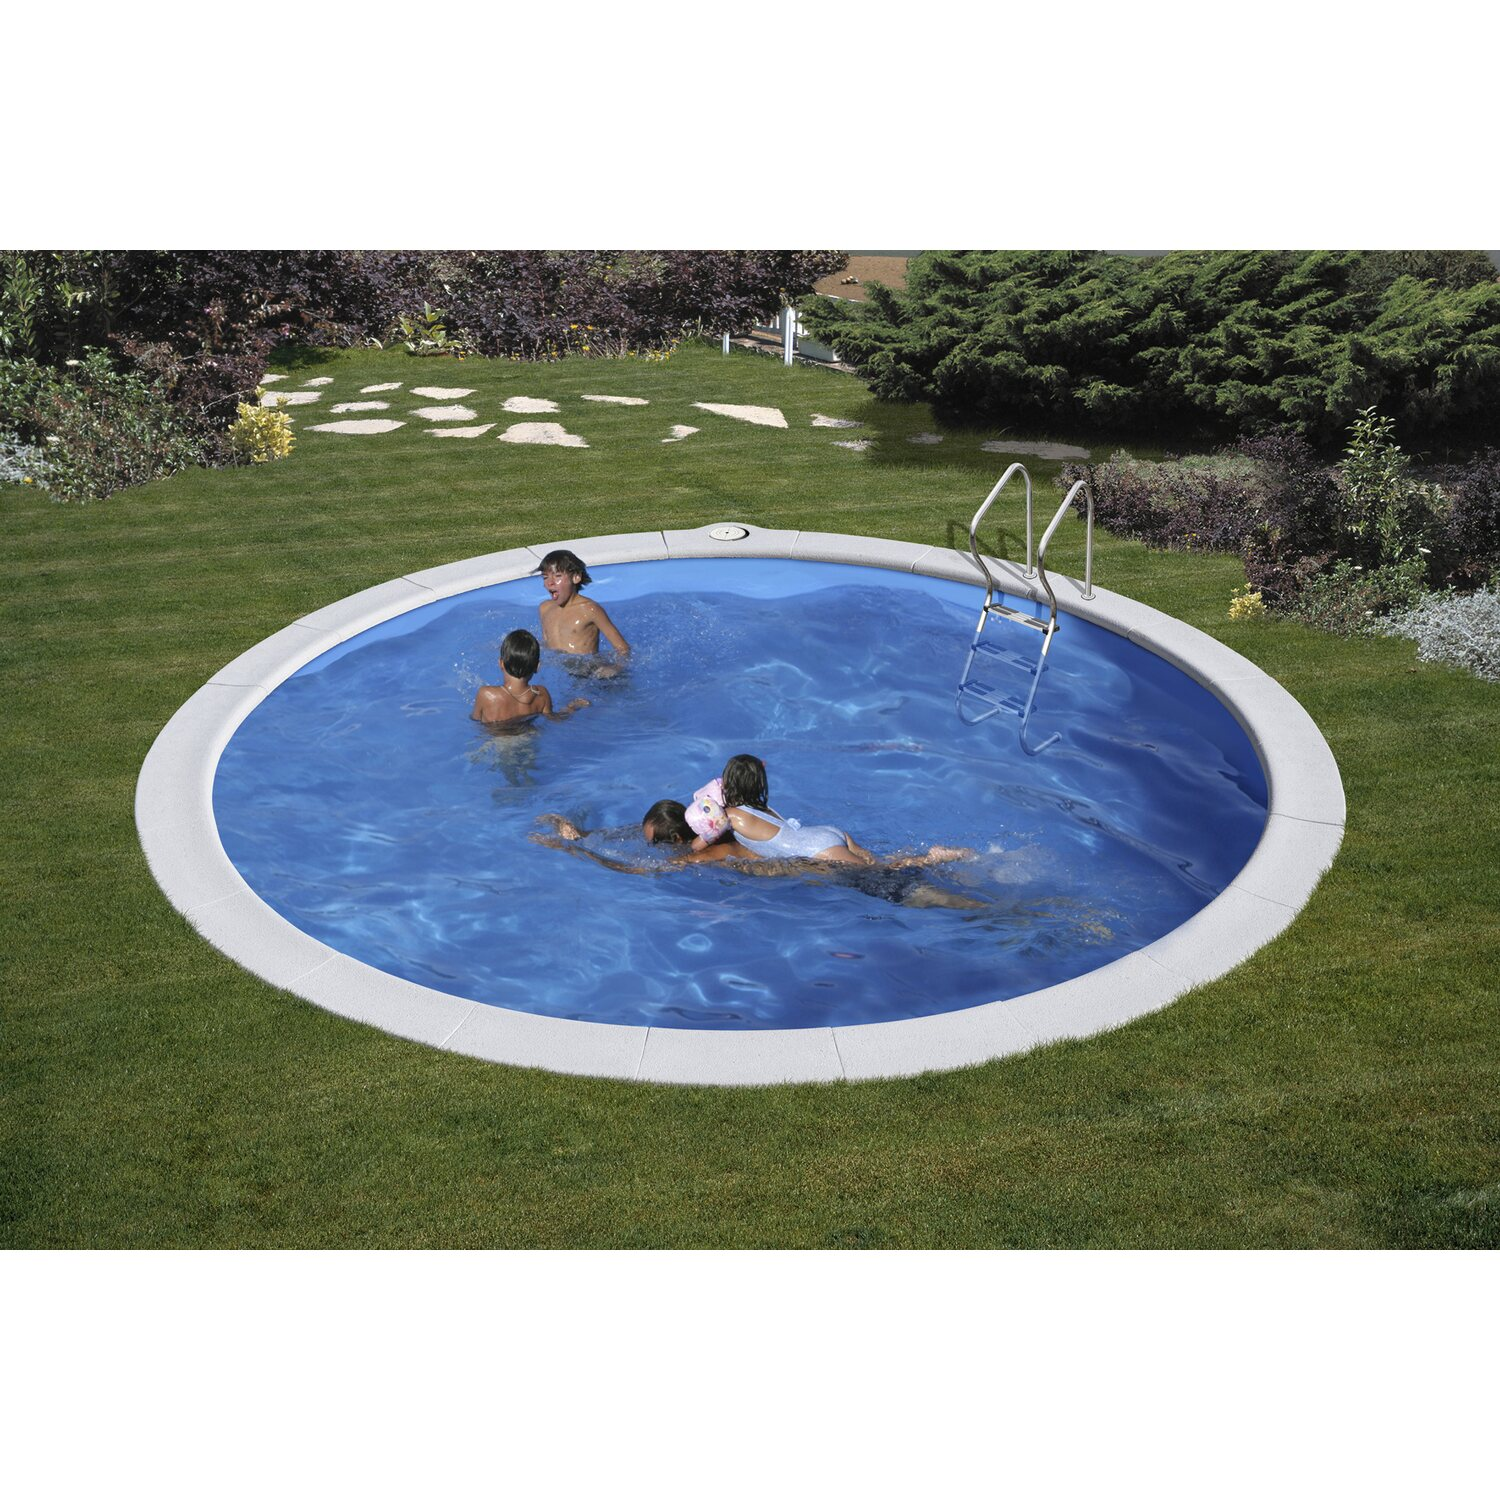 Piscina tonda interrata 420 cm x 150 cm kit completo for Attrezzi piscina